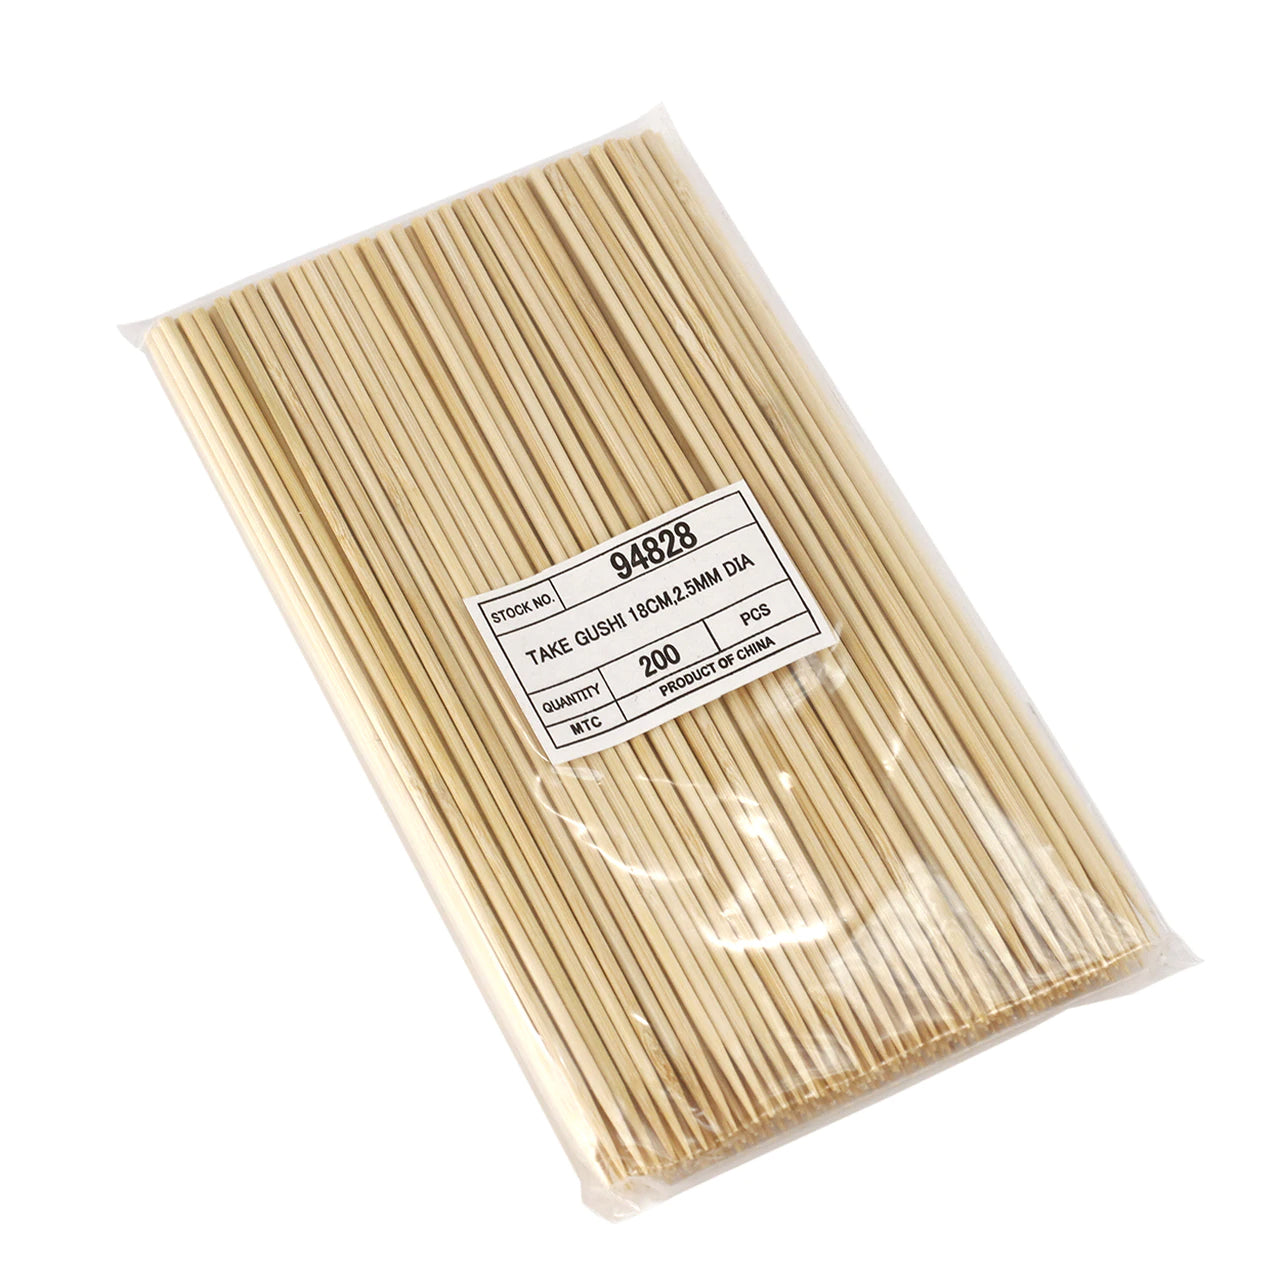 "Bamboo Skewers (2.5mm dia., 200 pcs/pk) - 6"" (15cm) (SKU: 94829)"